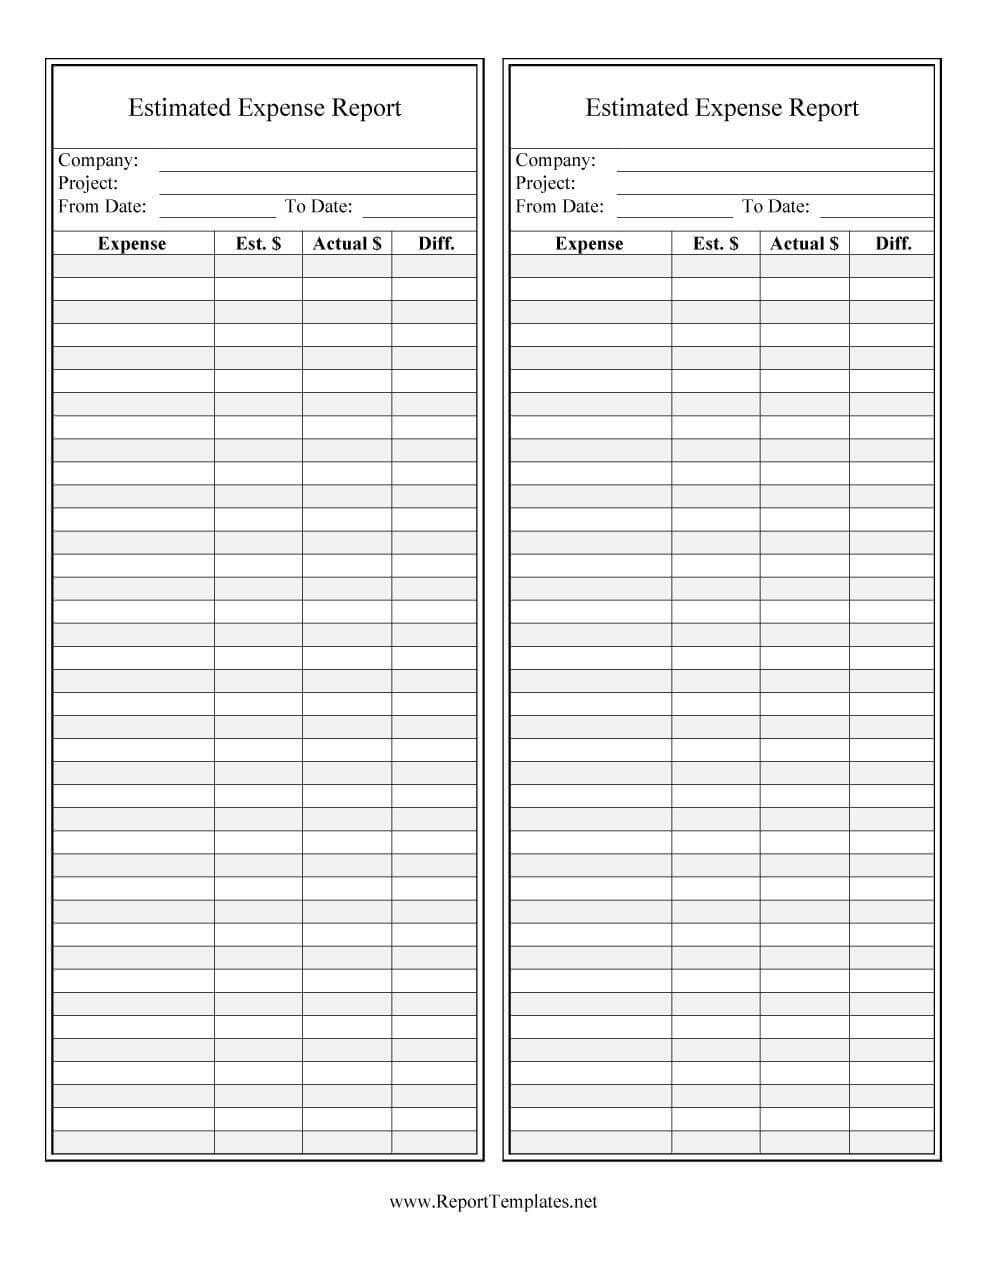 40+ Expense Report Templates To Help You Save Money ᐅ Intended For Company Expense Report Template